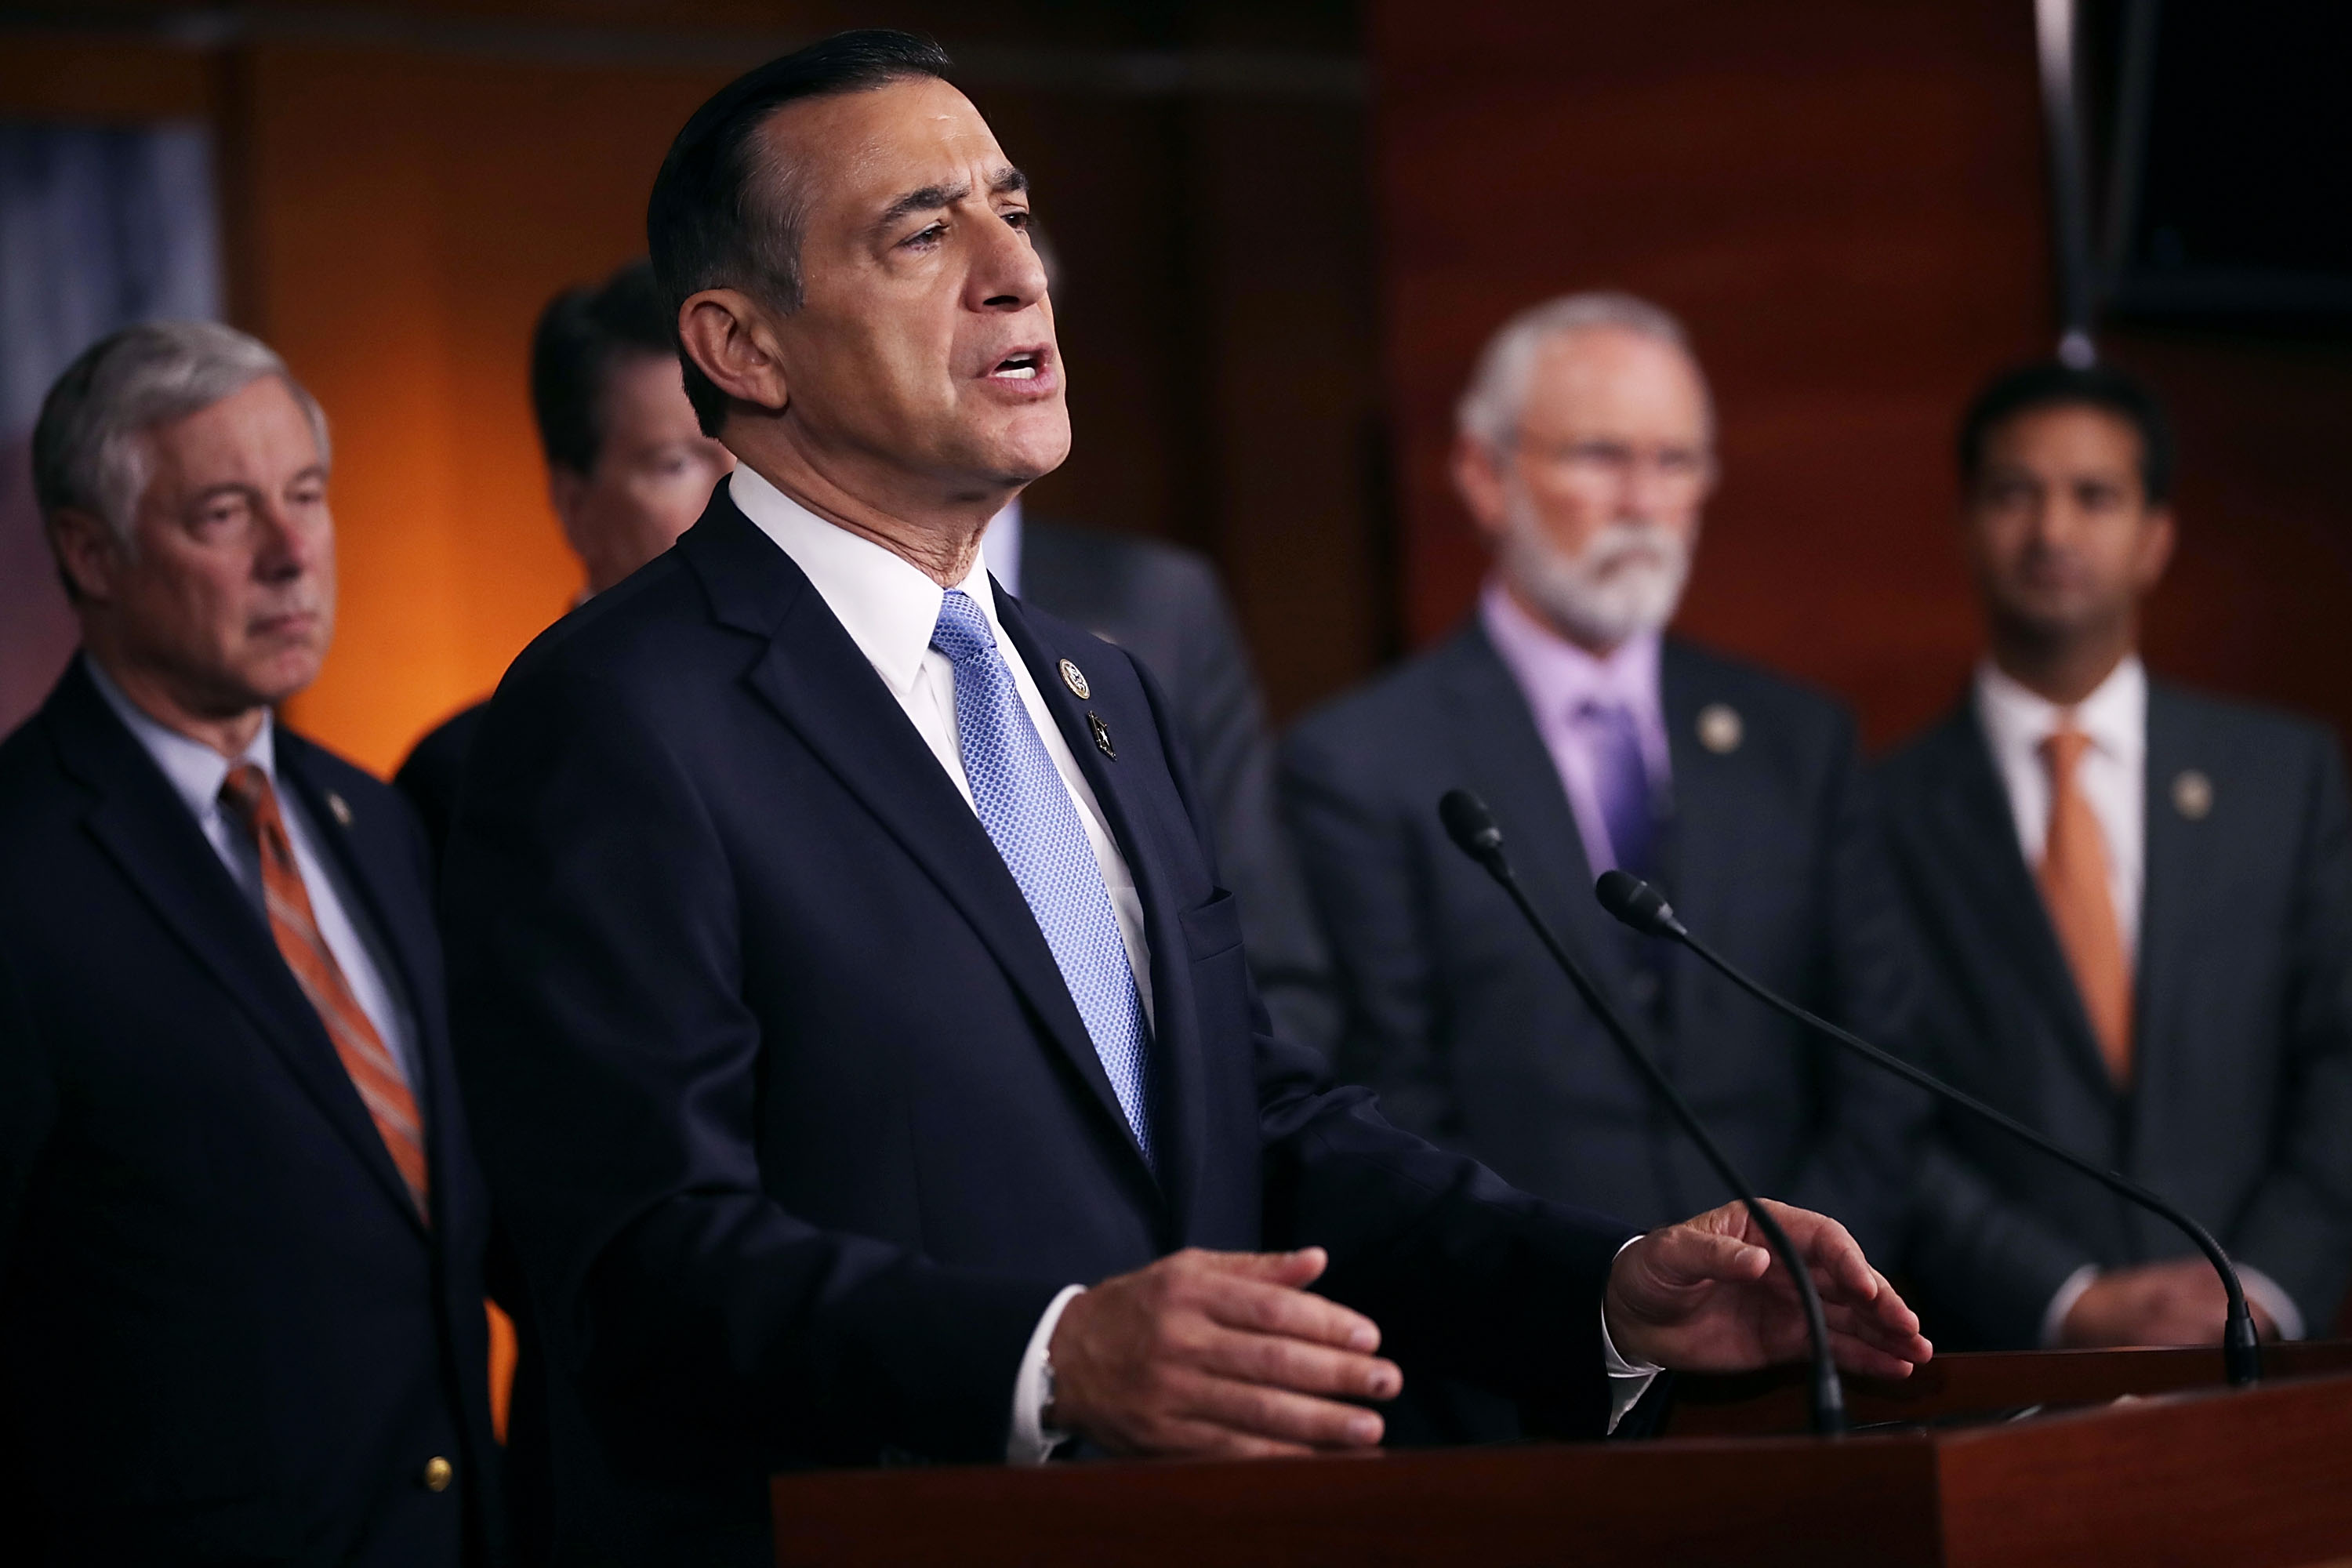 Rep. Darryll Issa is joined by more than a dozen Republican members of Congress as he speaks during a news conference about the Deferred Action for Childhood Arrivals (DACA) program at the U.S. Capitol on Nov. 9, 2017. (Credit: Chip Somodevilla / Getty Images)